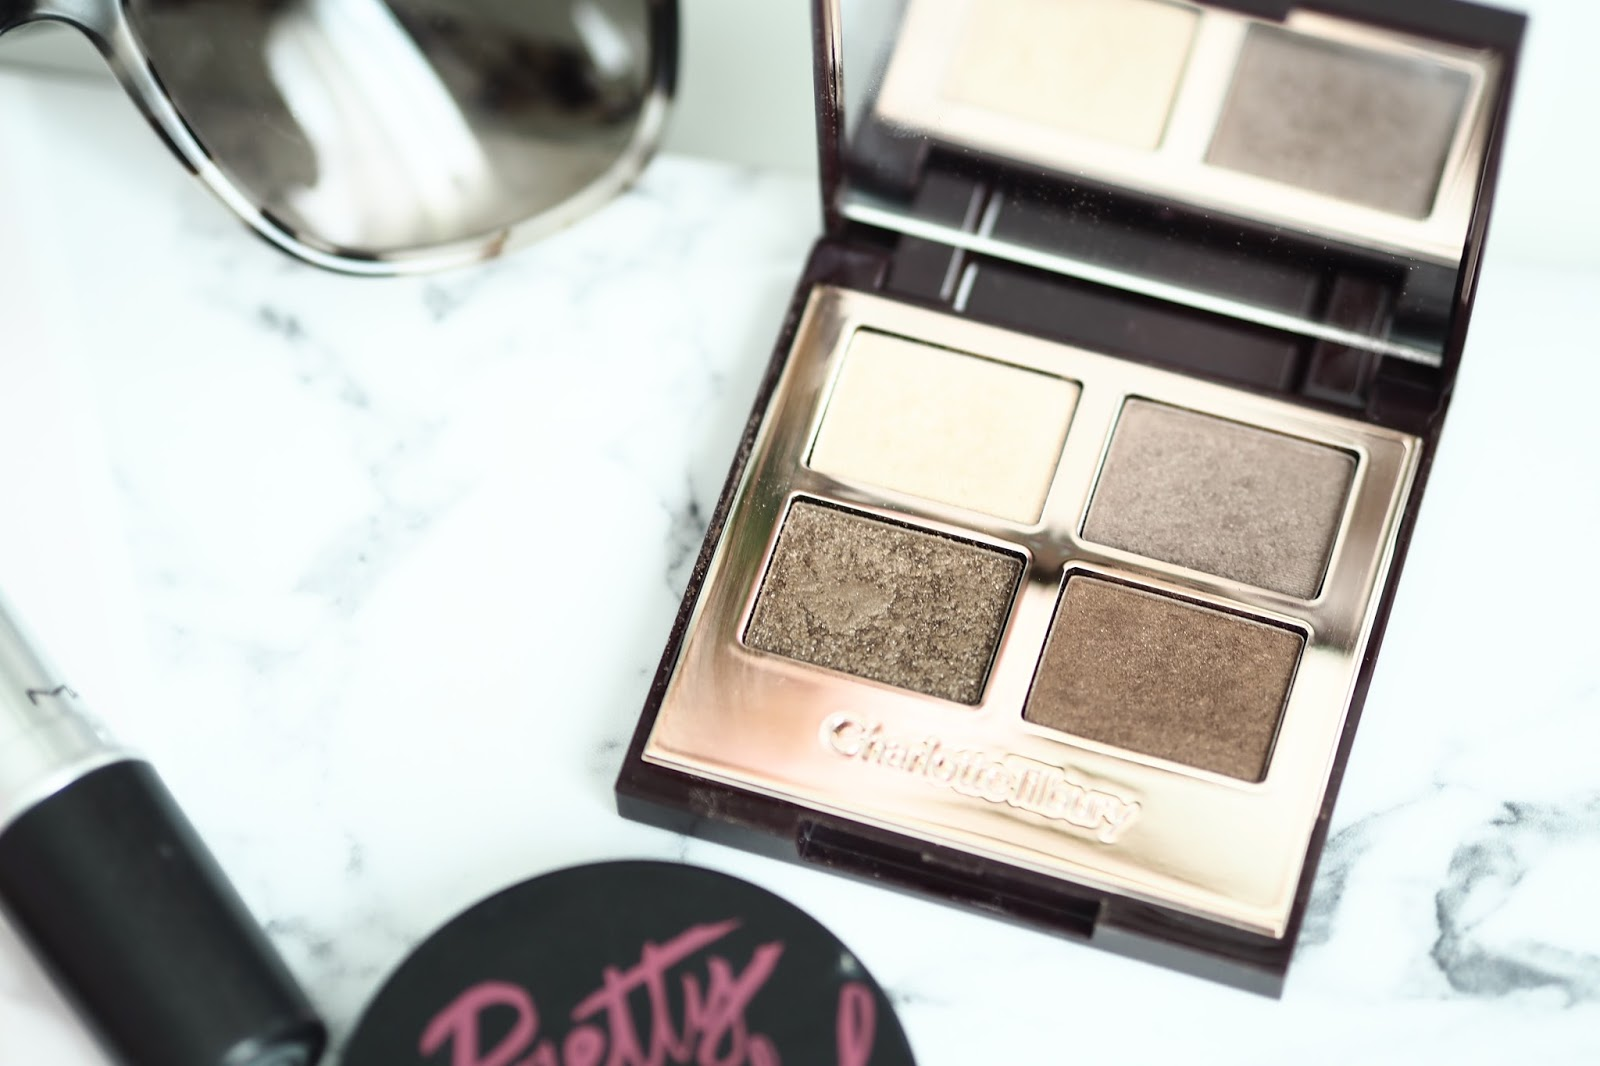 Charlotte Tilbury luxury palette golden goddess